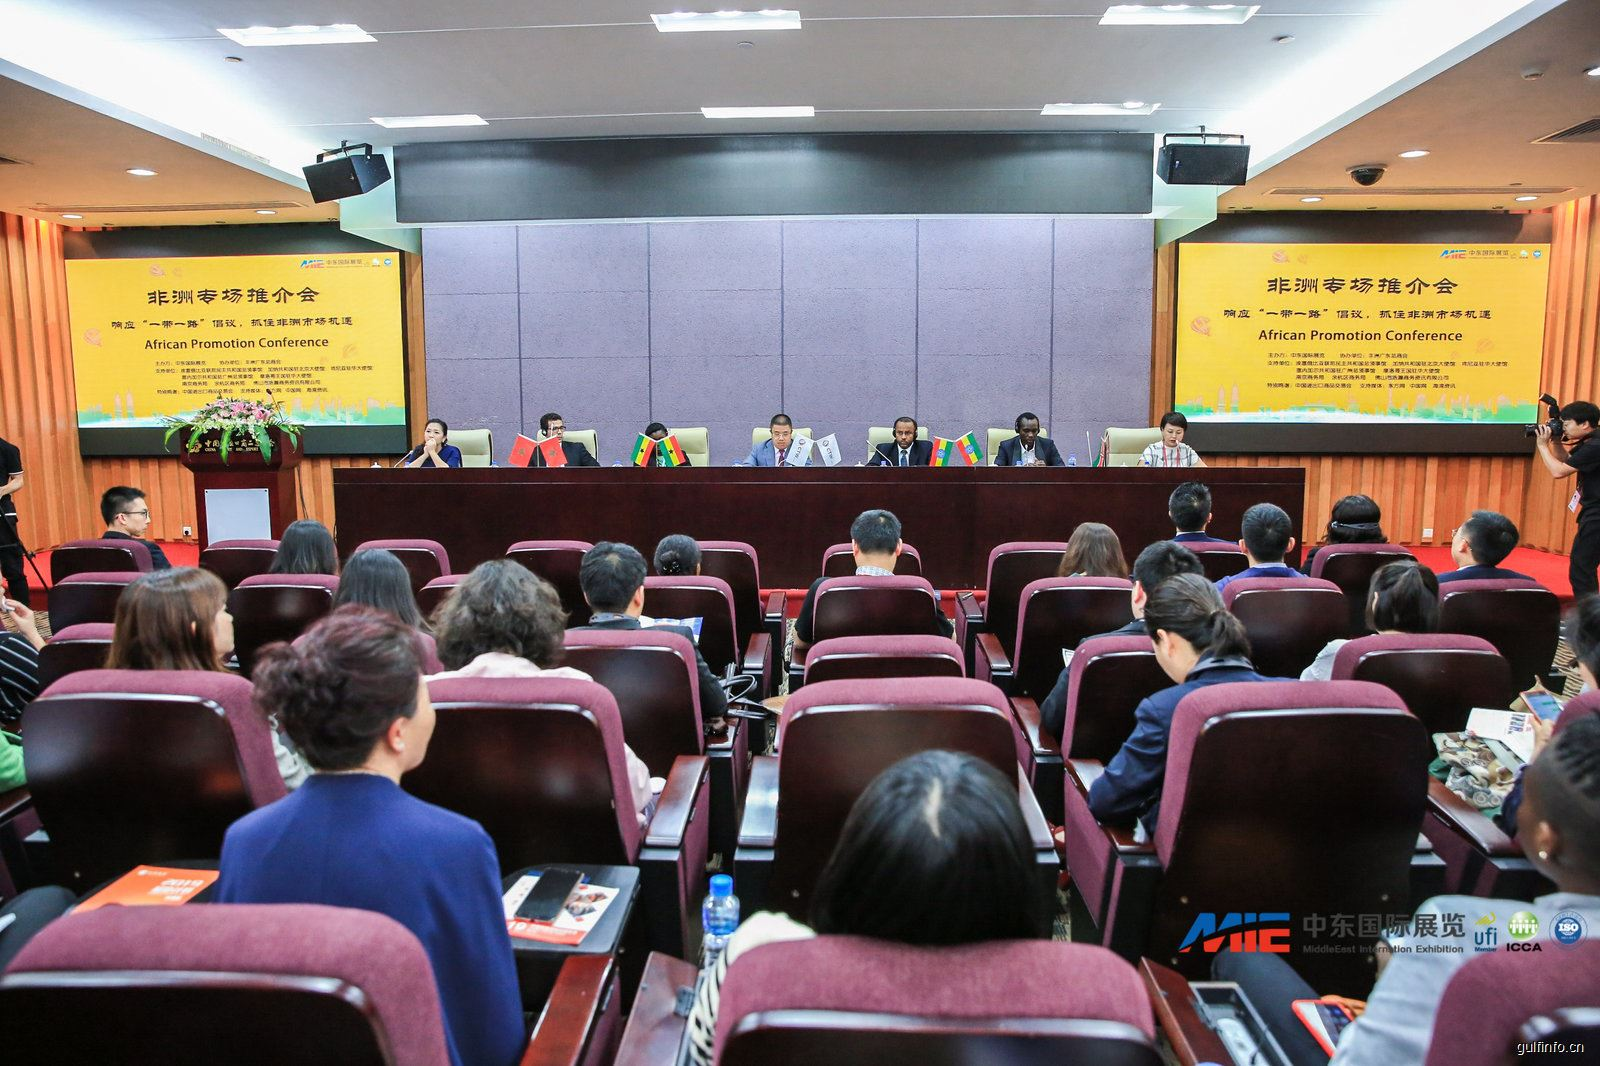 The 125th Canton fair held a special presentation about Africa